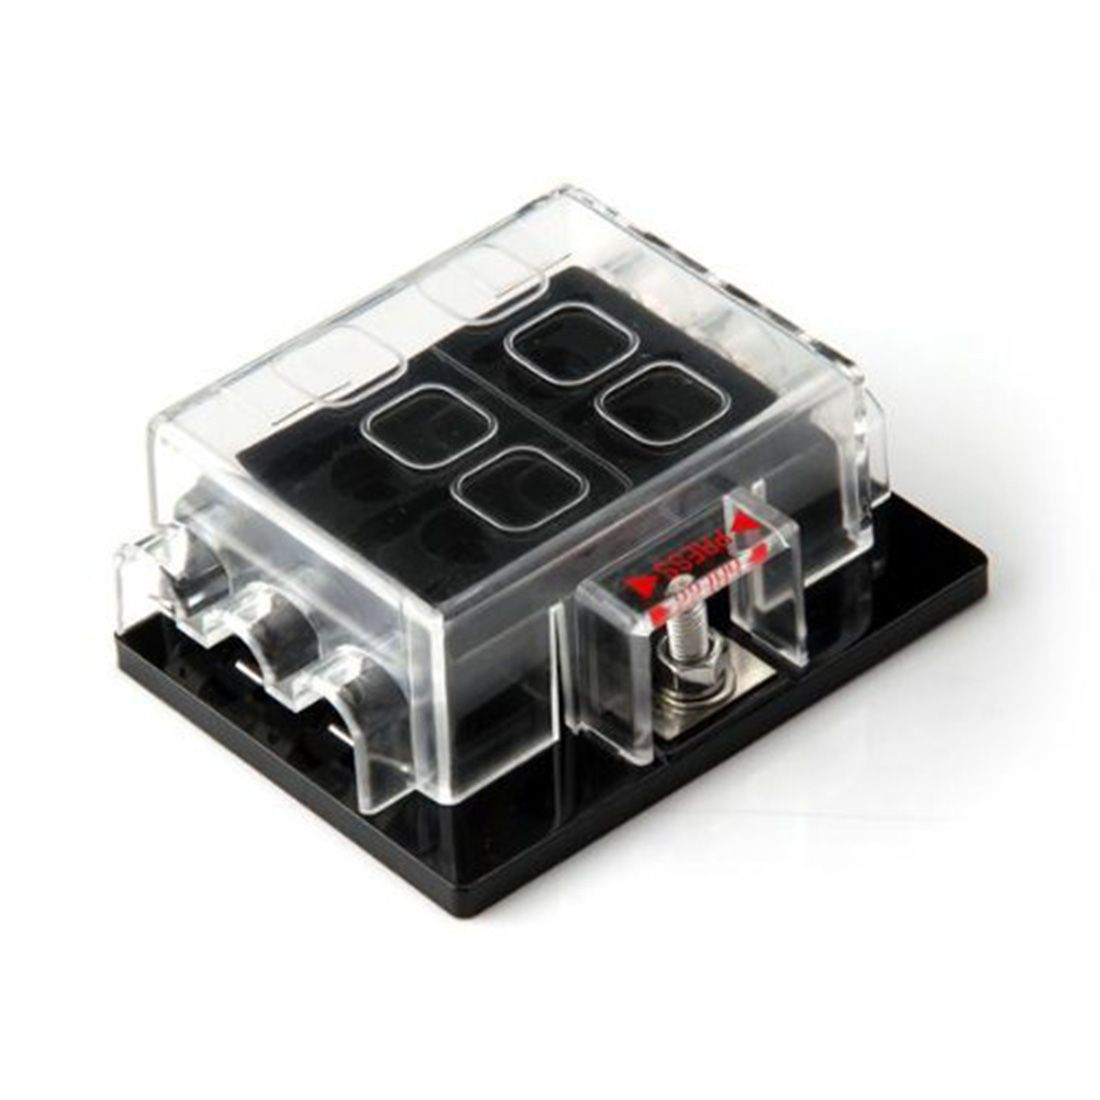 High Quality 6 Way Circuit Car Truck Automotive Atc Ato Blade Fuse Box Circuits Holder Fuseholder 32v